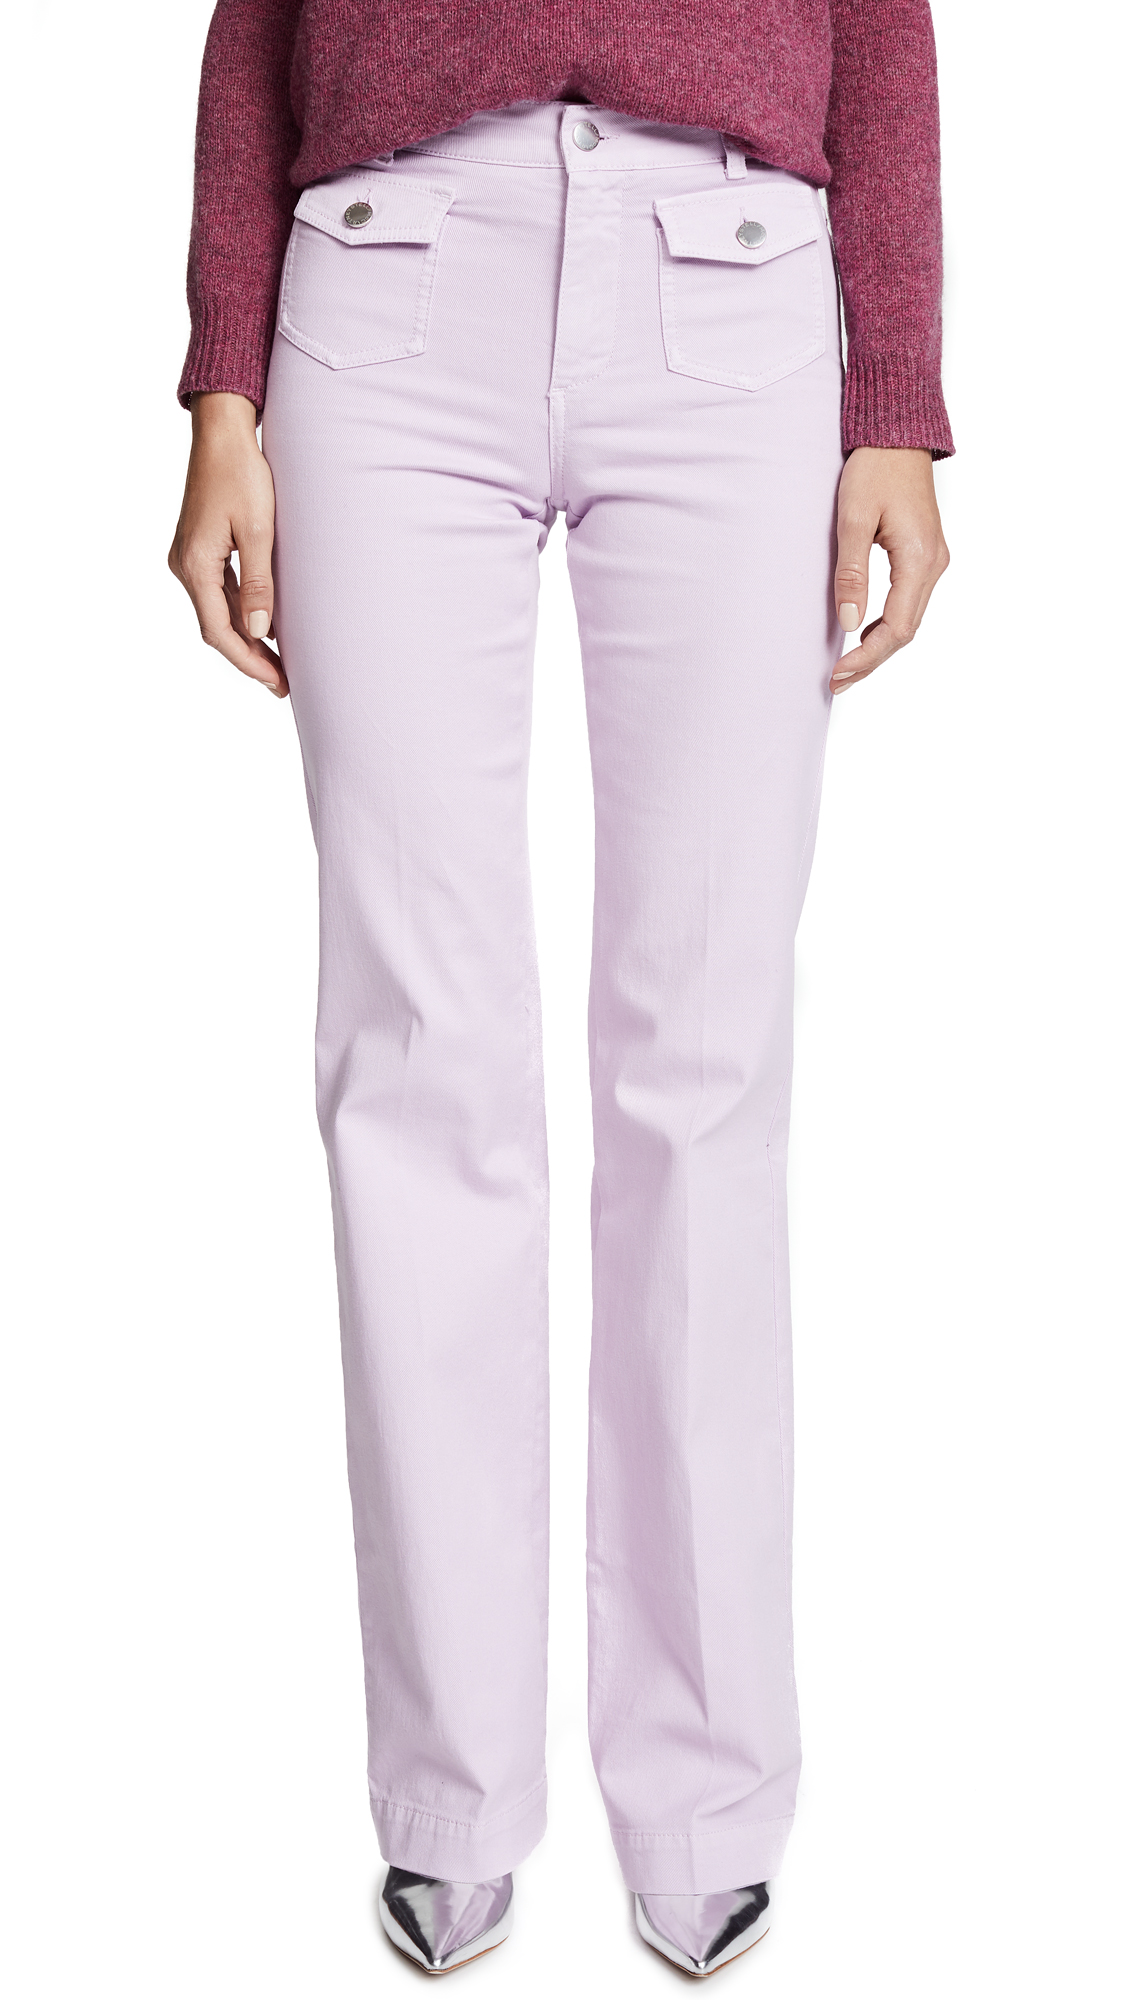 Stella McCartney The Flare Trousers - Lilac